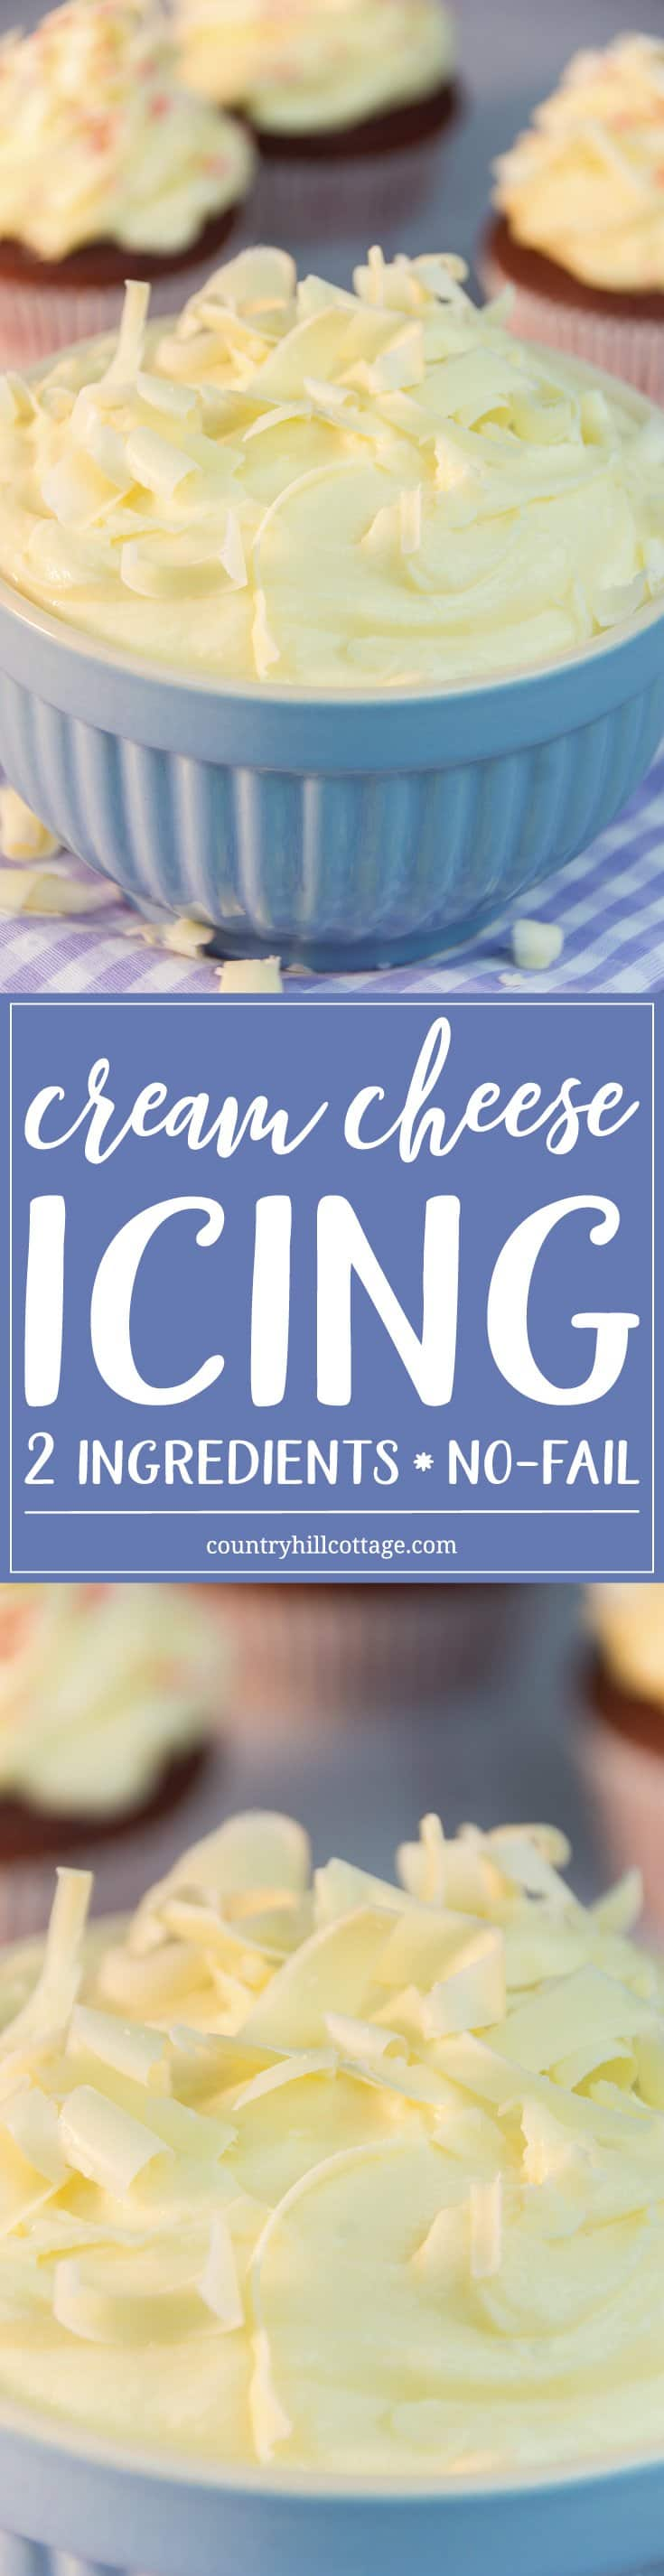 Our easy no-fail cream cheese icing with only ingredients is perfect for red velvet cupcakes! #creamcheese #icing |countryhillcottage.com